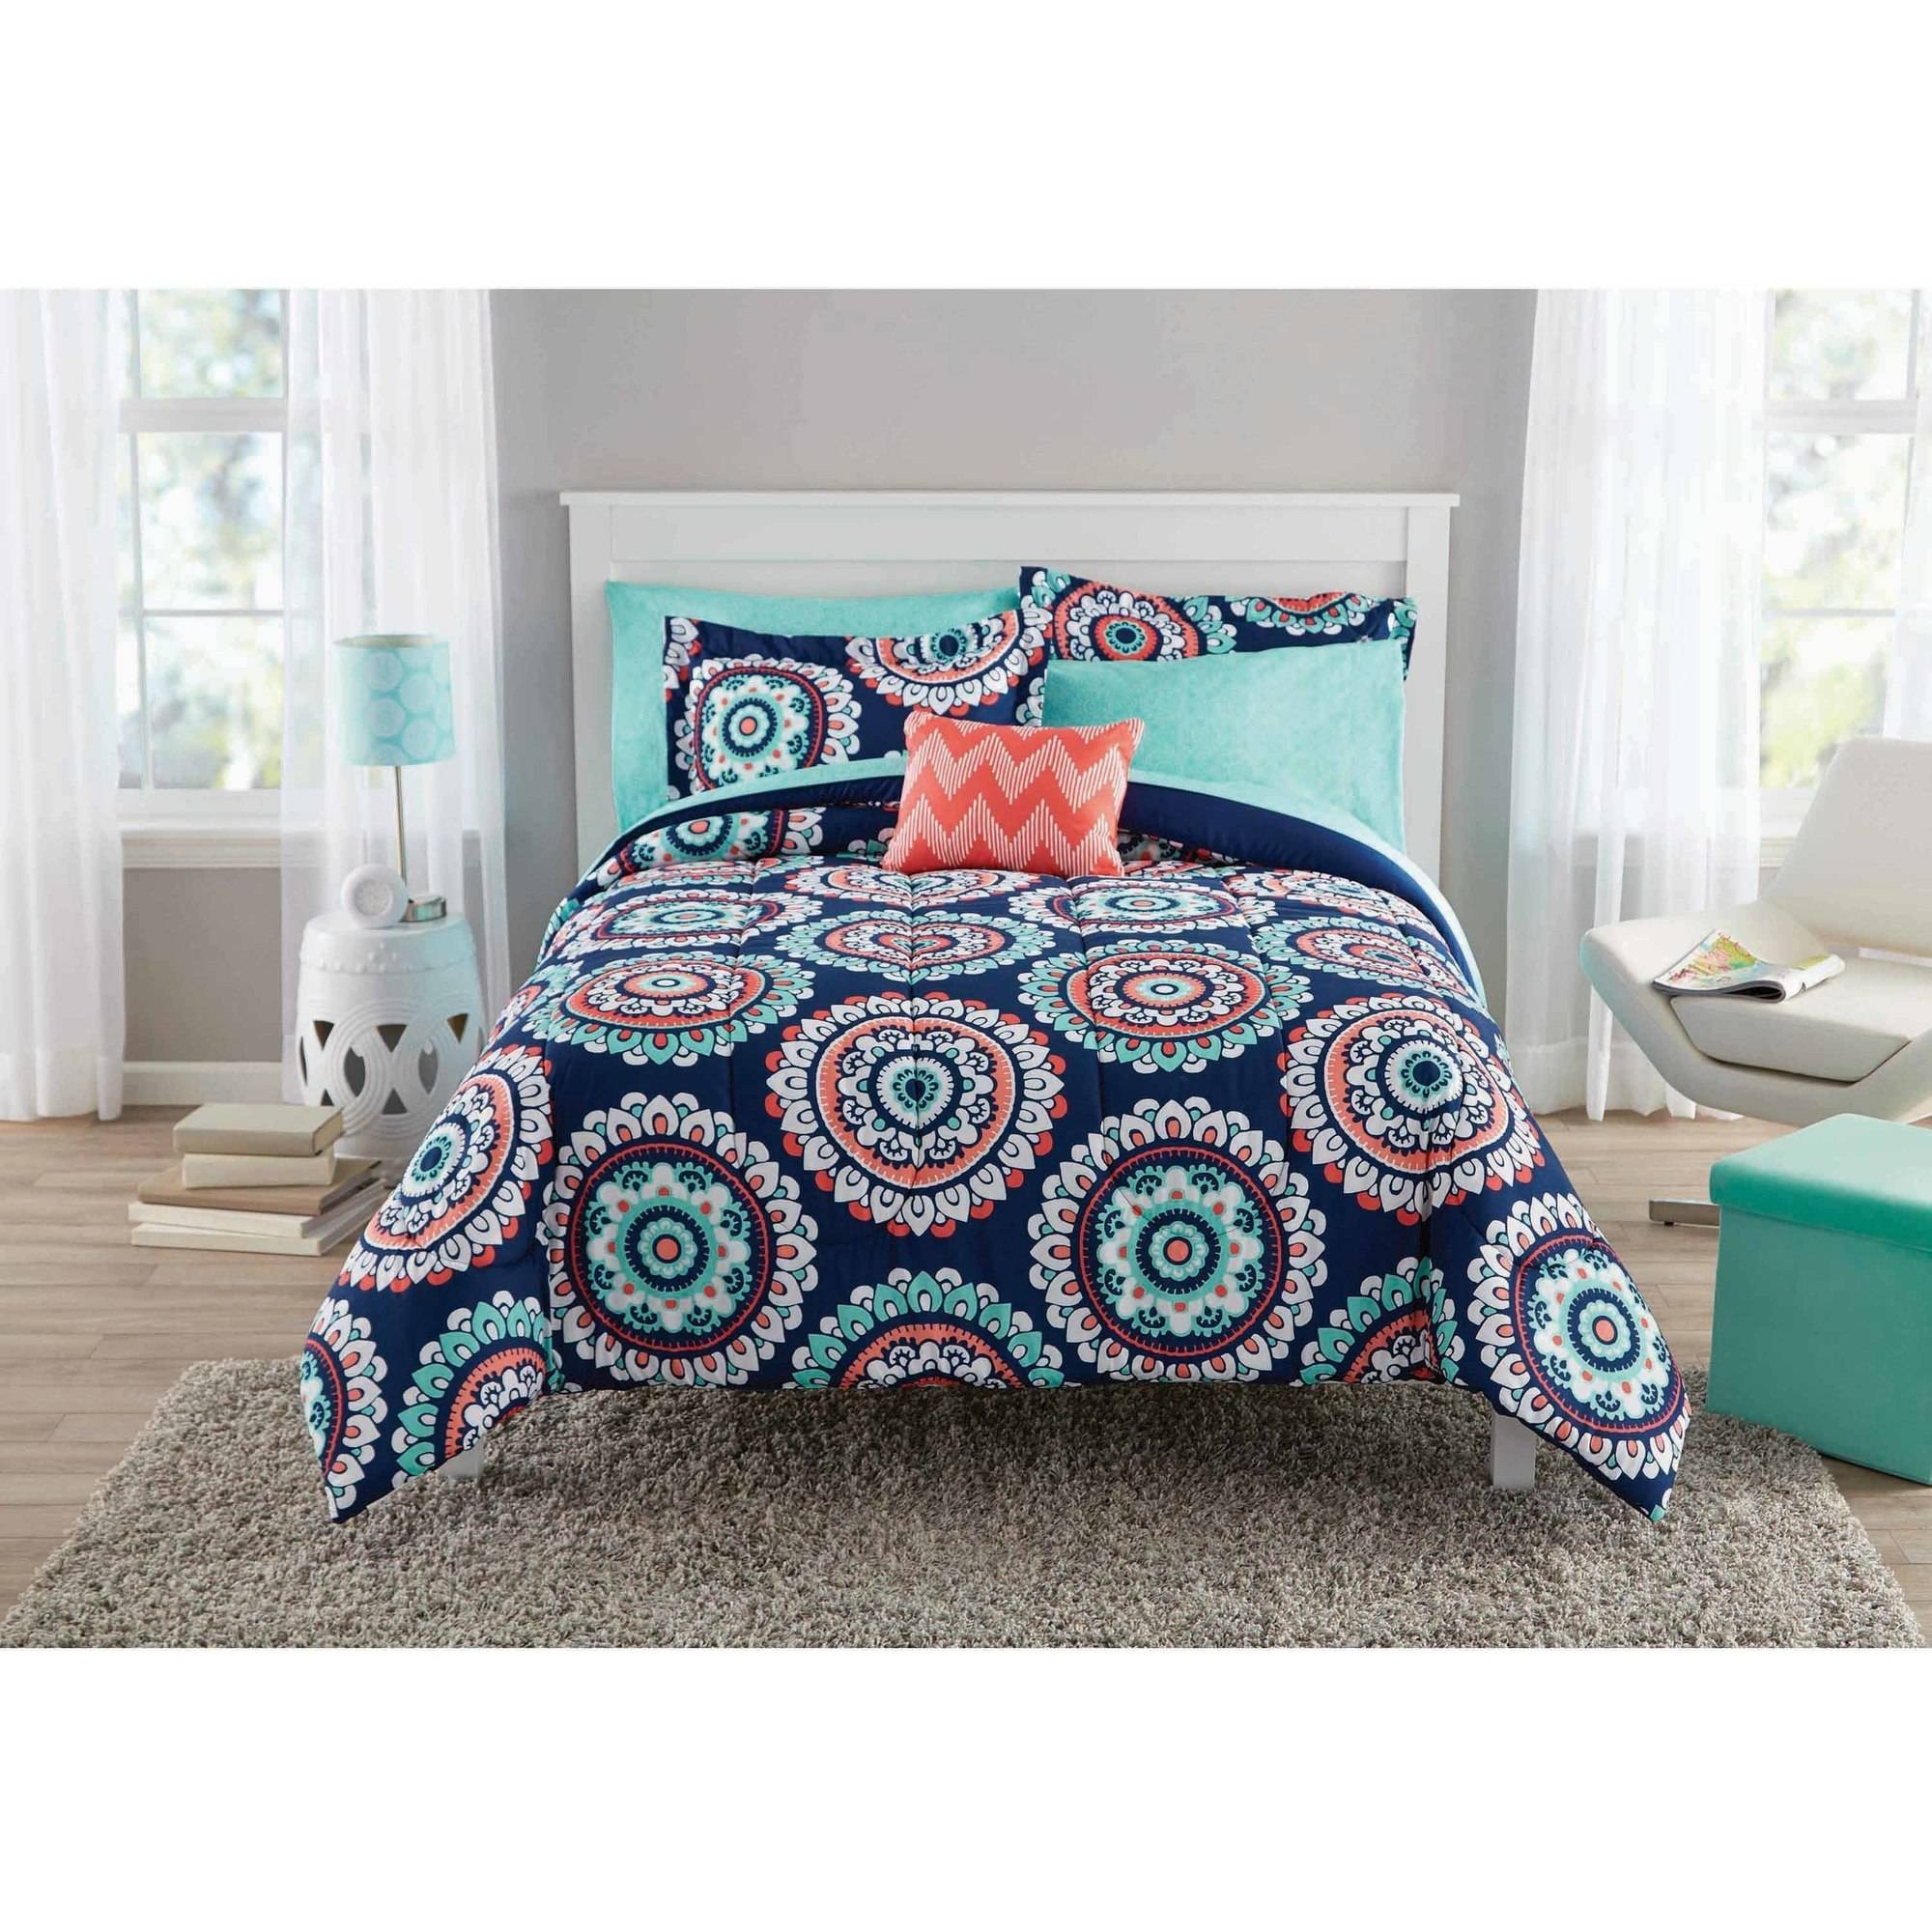 Mainstays Navy Medallion Bed in a Bag Queen